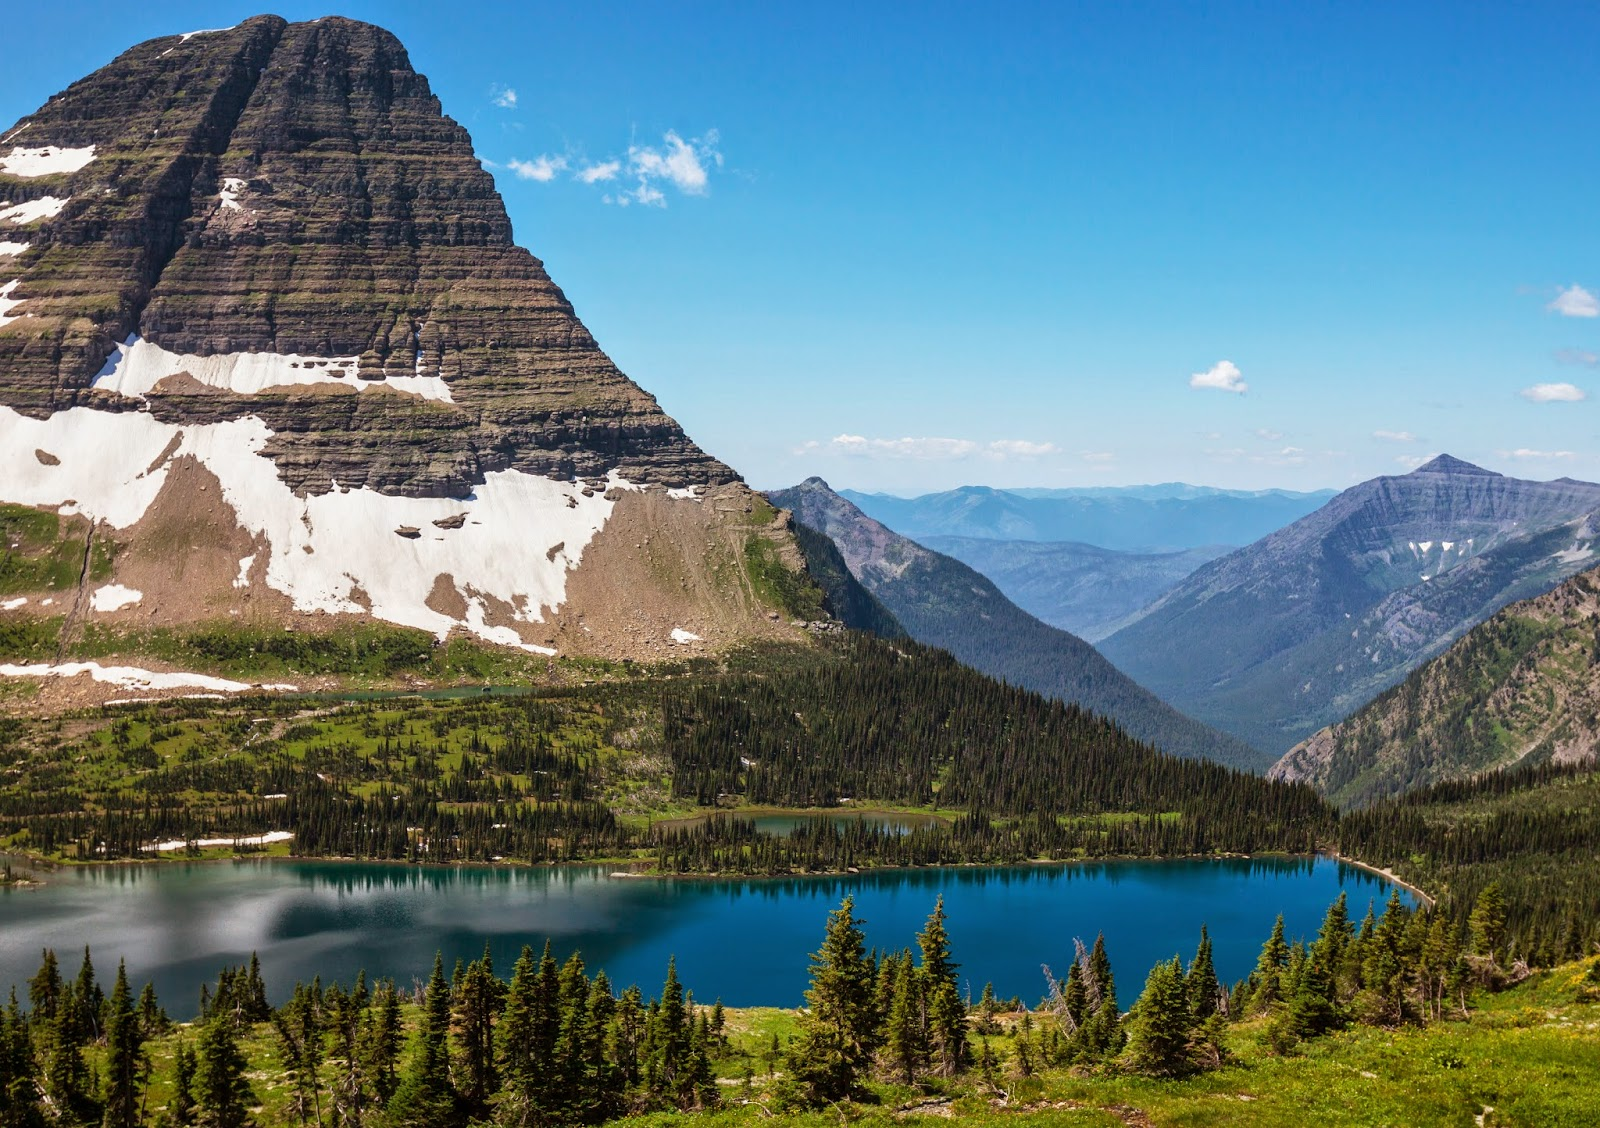 Day Hiking Trails: Hike to great mountain vistas at Glacier NP